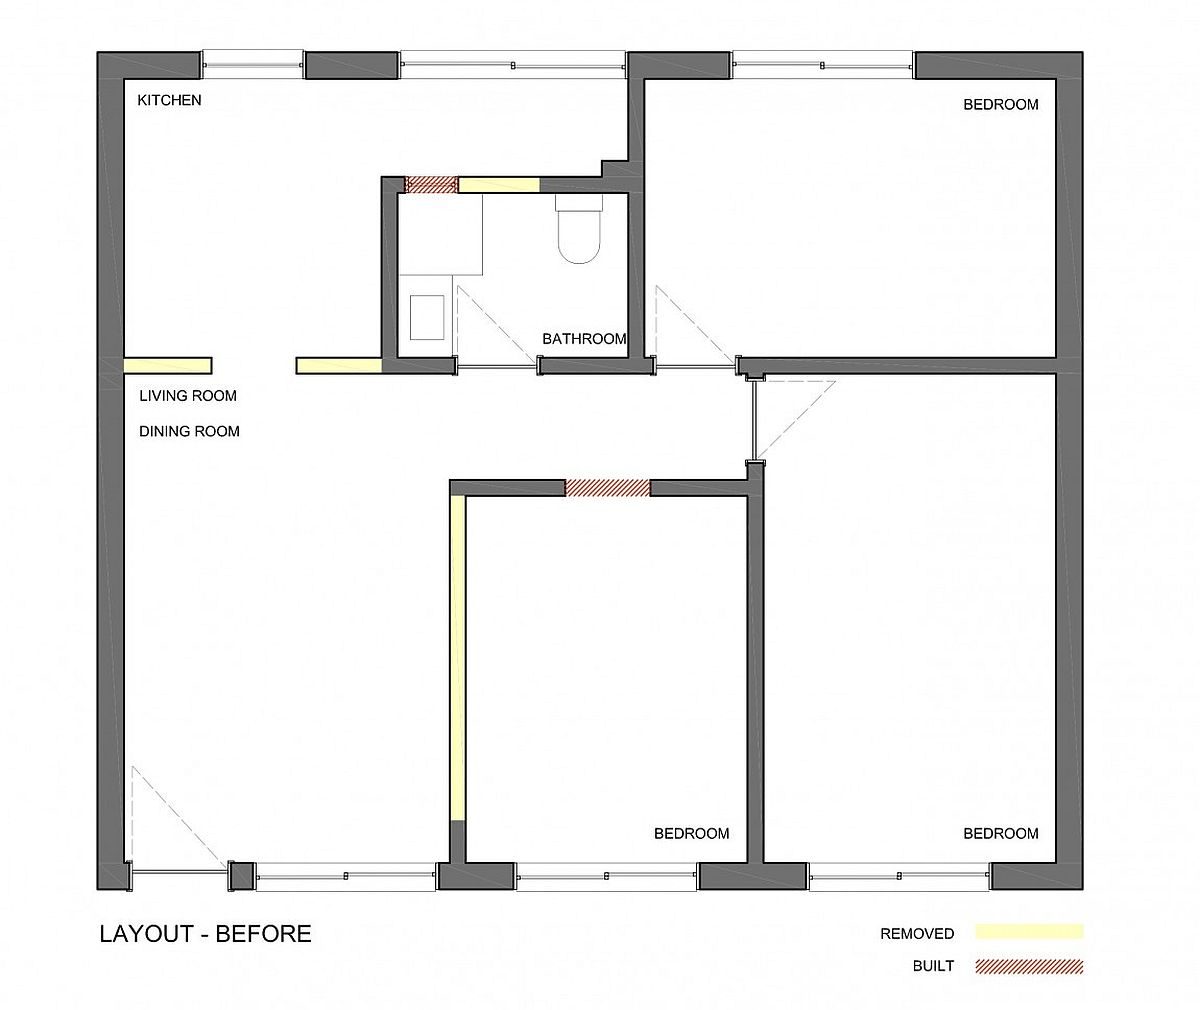 Layout of small Brazilian apartment before renovation